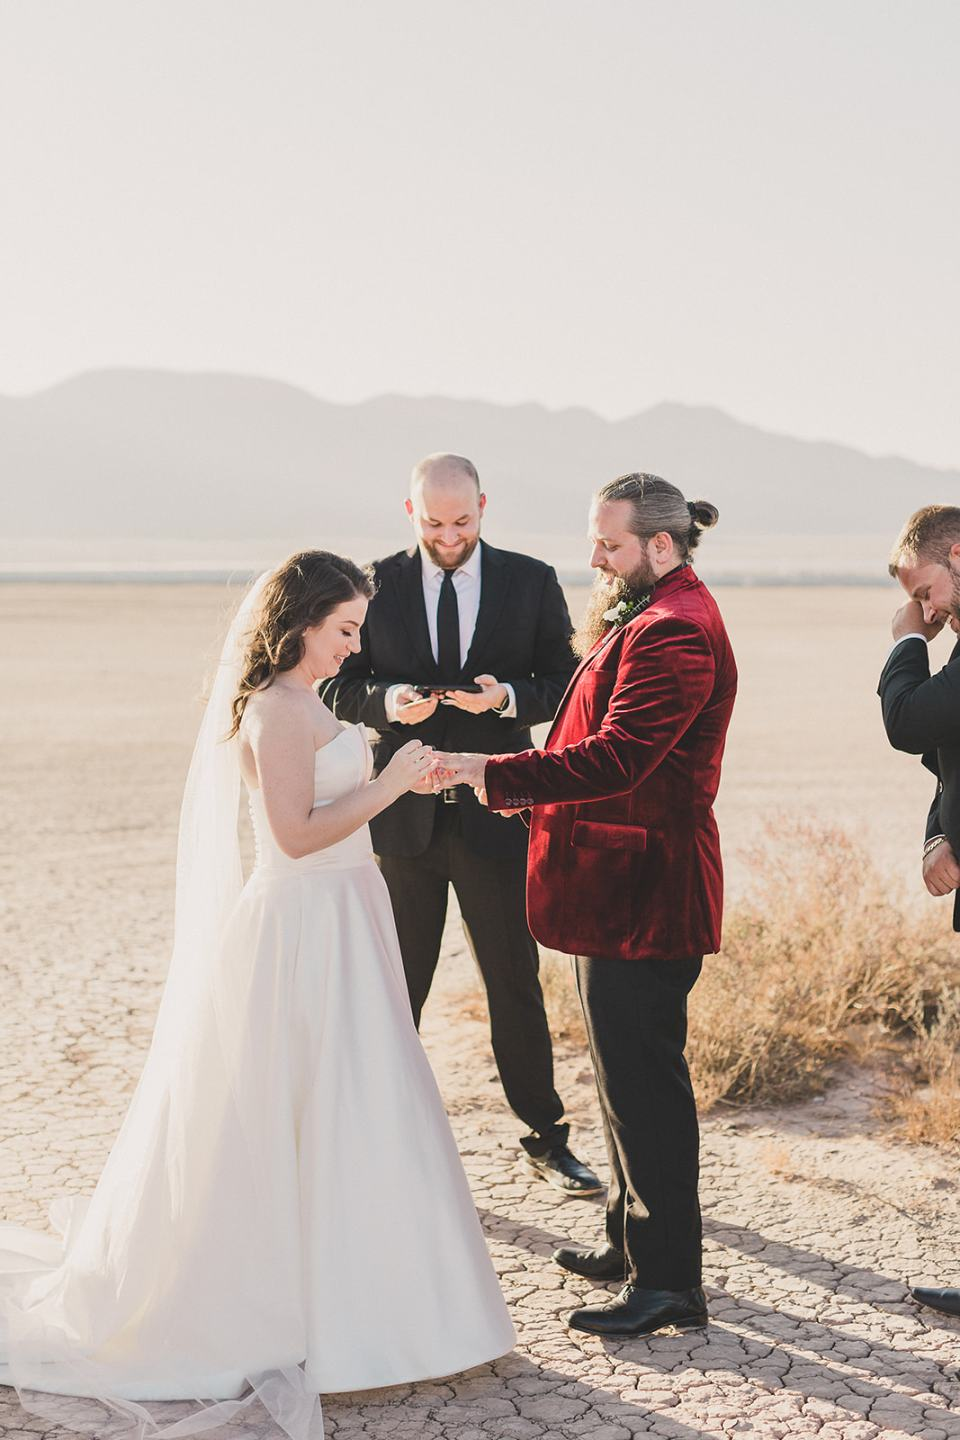 intimate wedding ceremony in Las Vegas